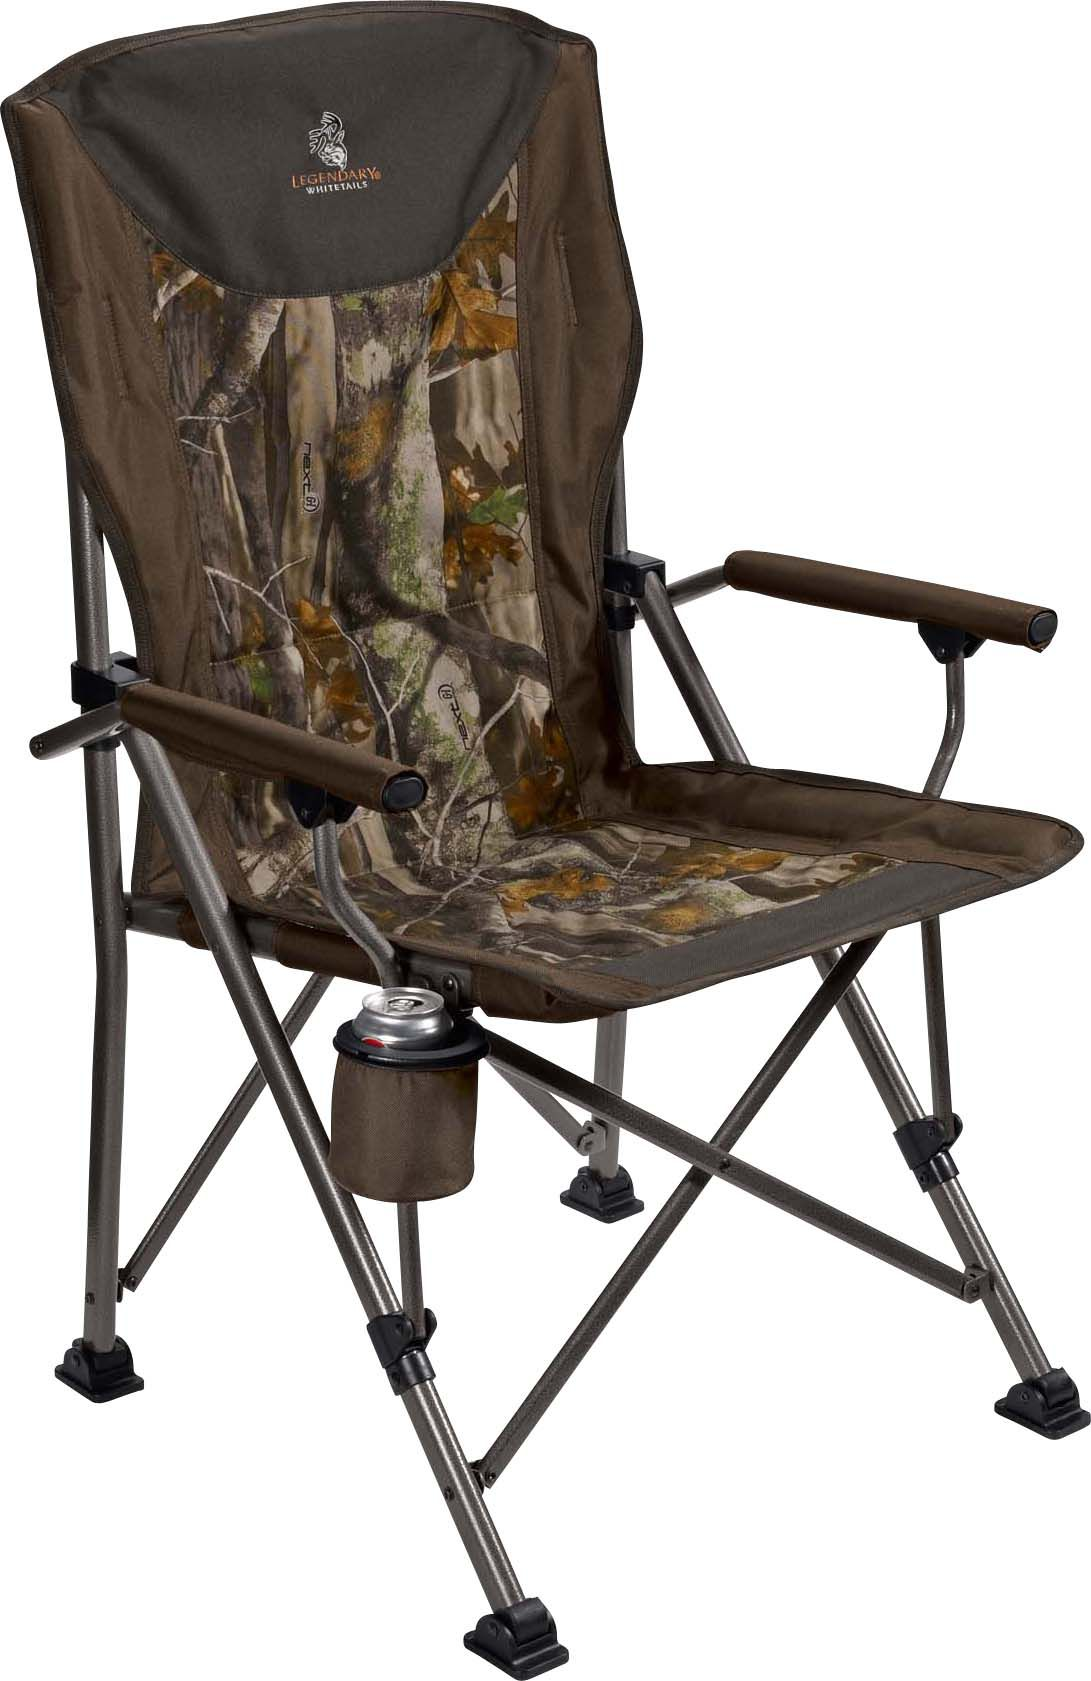 This Is Not Your Average Portable Bag Chair Heavy Duty Powder Coated Steel Frame And Hardware For A Full 300 Lb Capacity Features Next Camo Accents